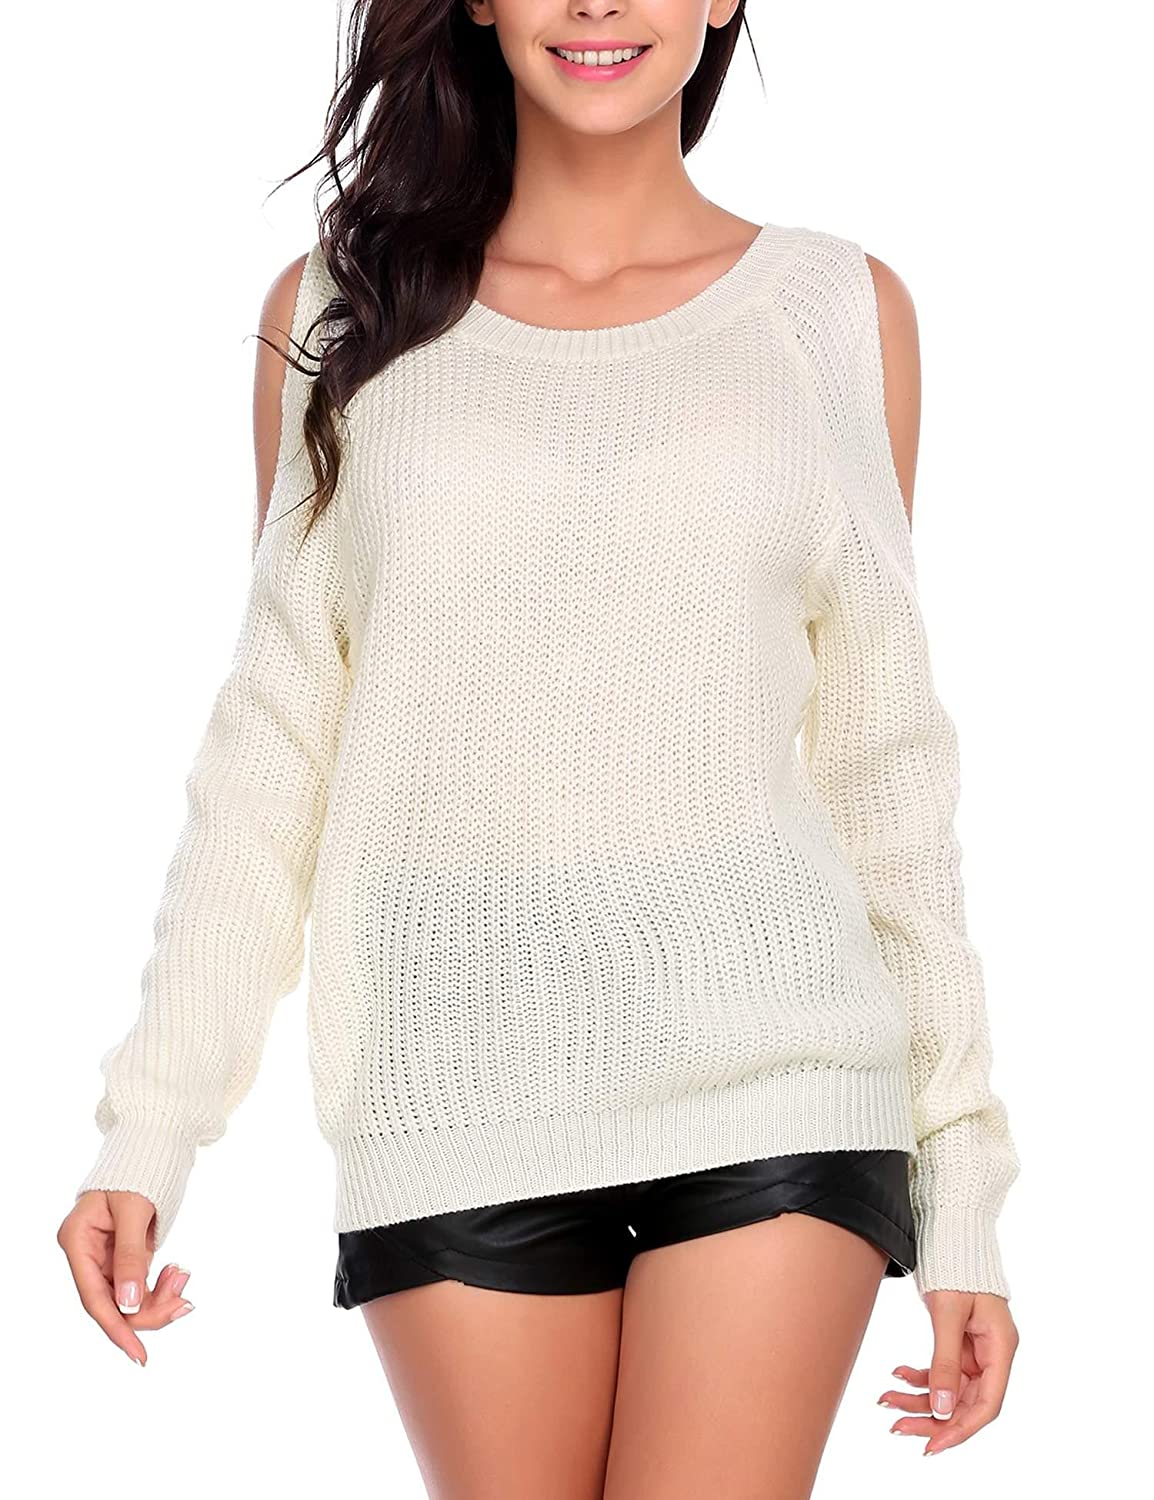 BeautyUU Women Long Sleeve Ribbed Knit Cut Out Top Cold Open Shoulder  Sweater Blouse at Amazon Women s Clothing store  1729a9381